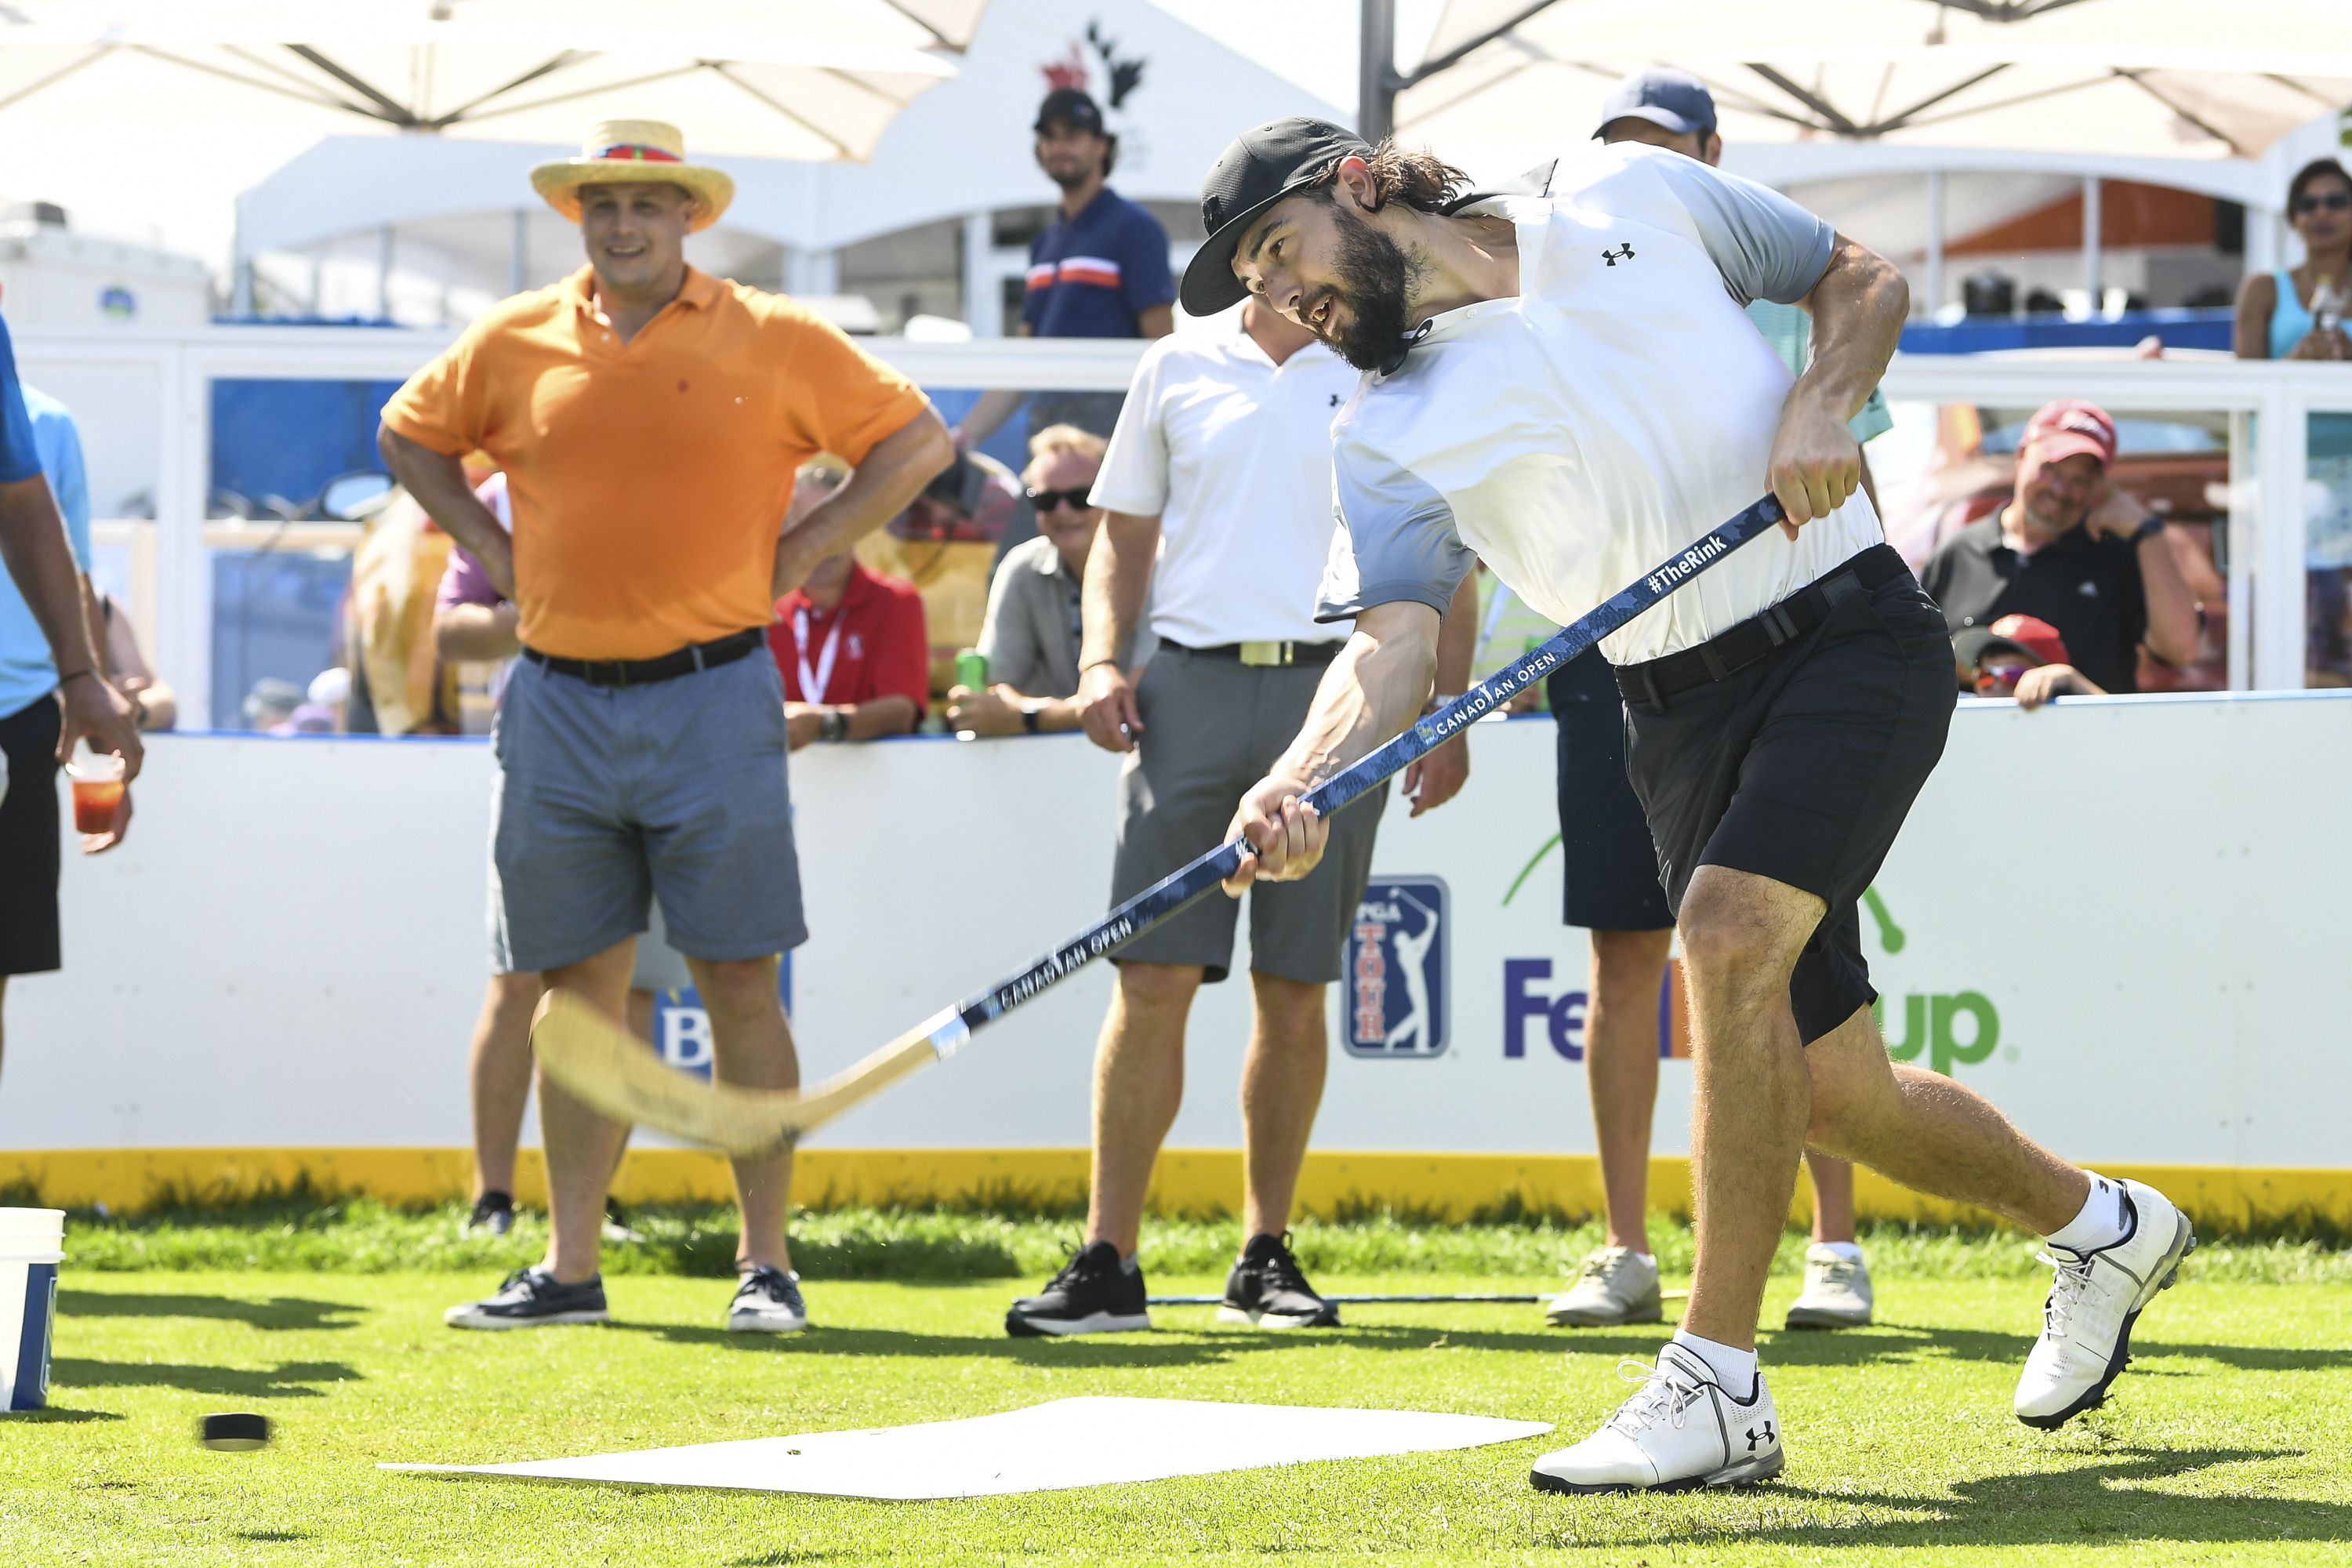 RBC Canadian Open - Preview Day 3